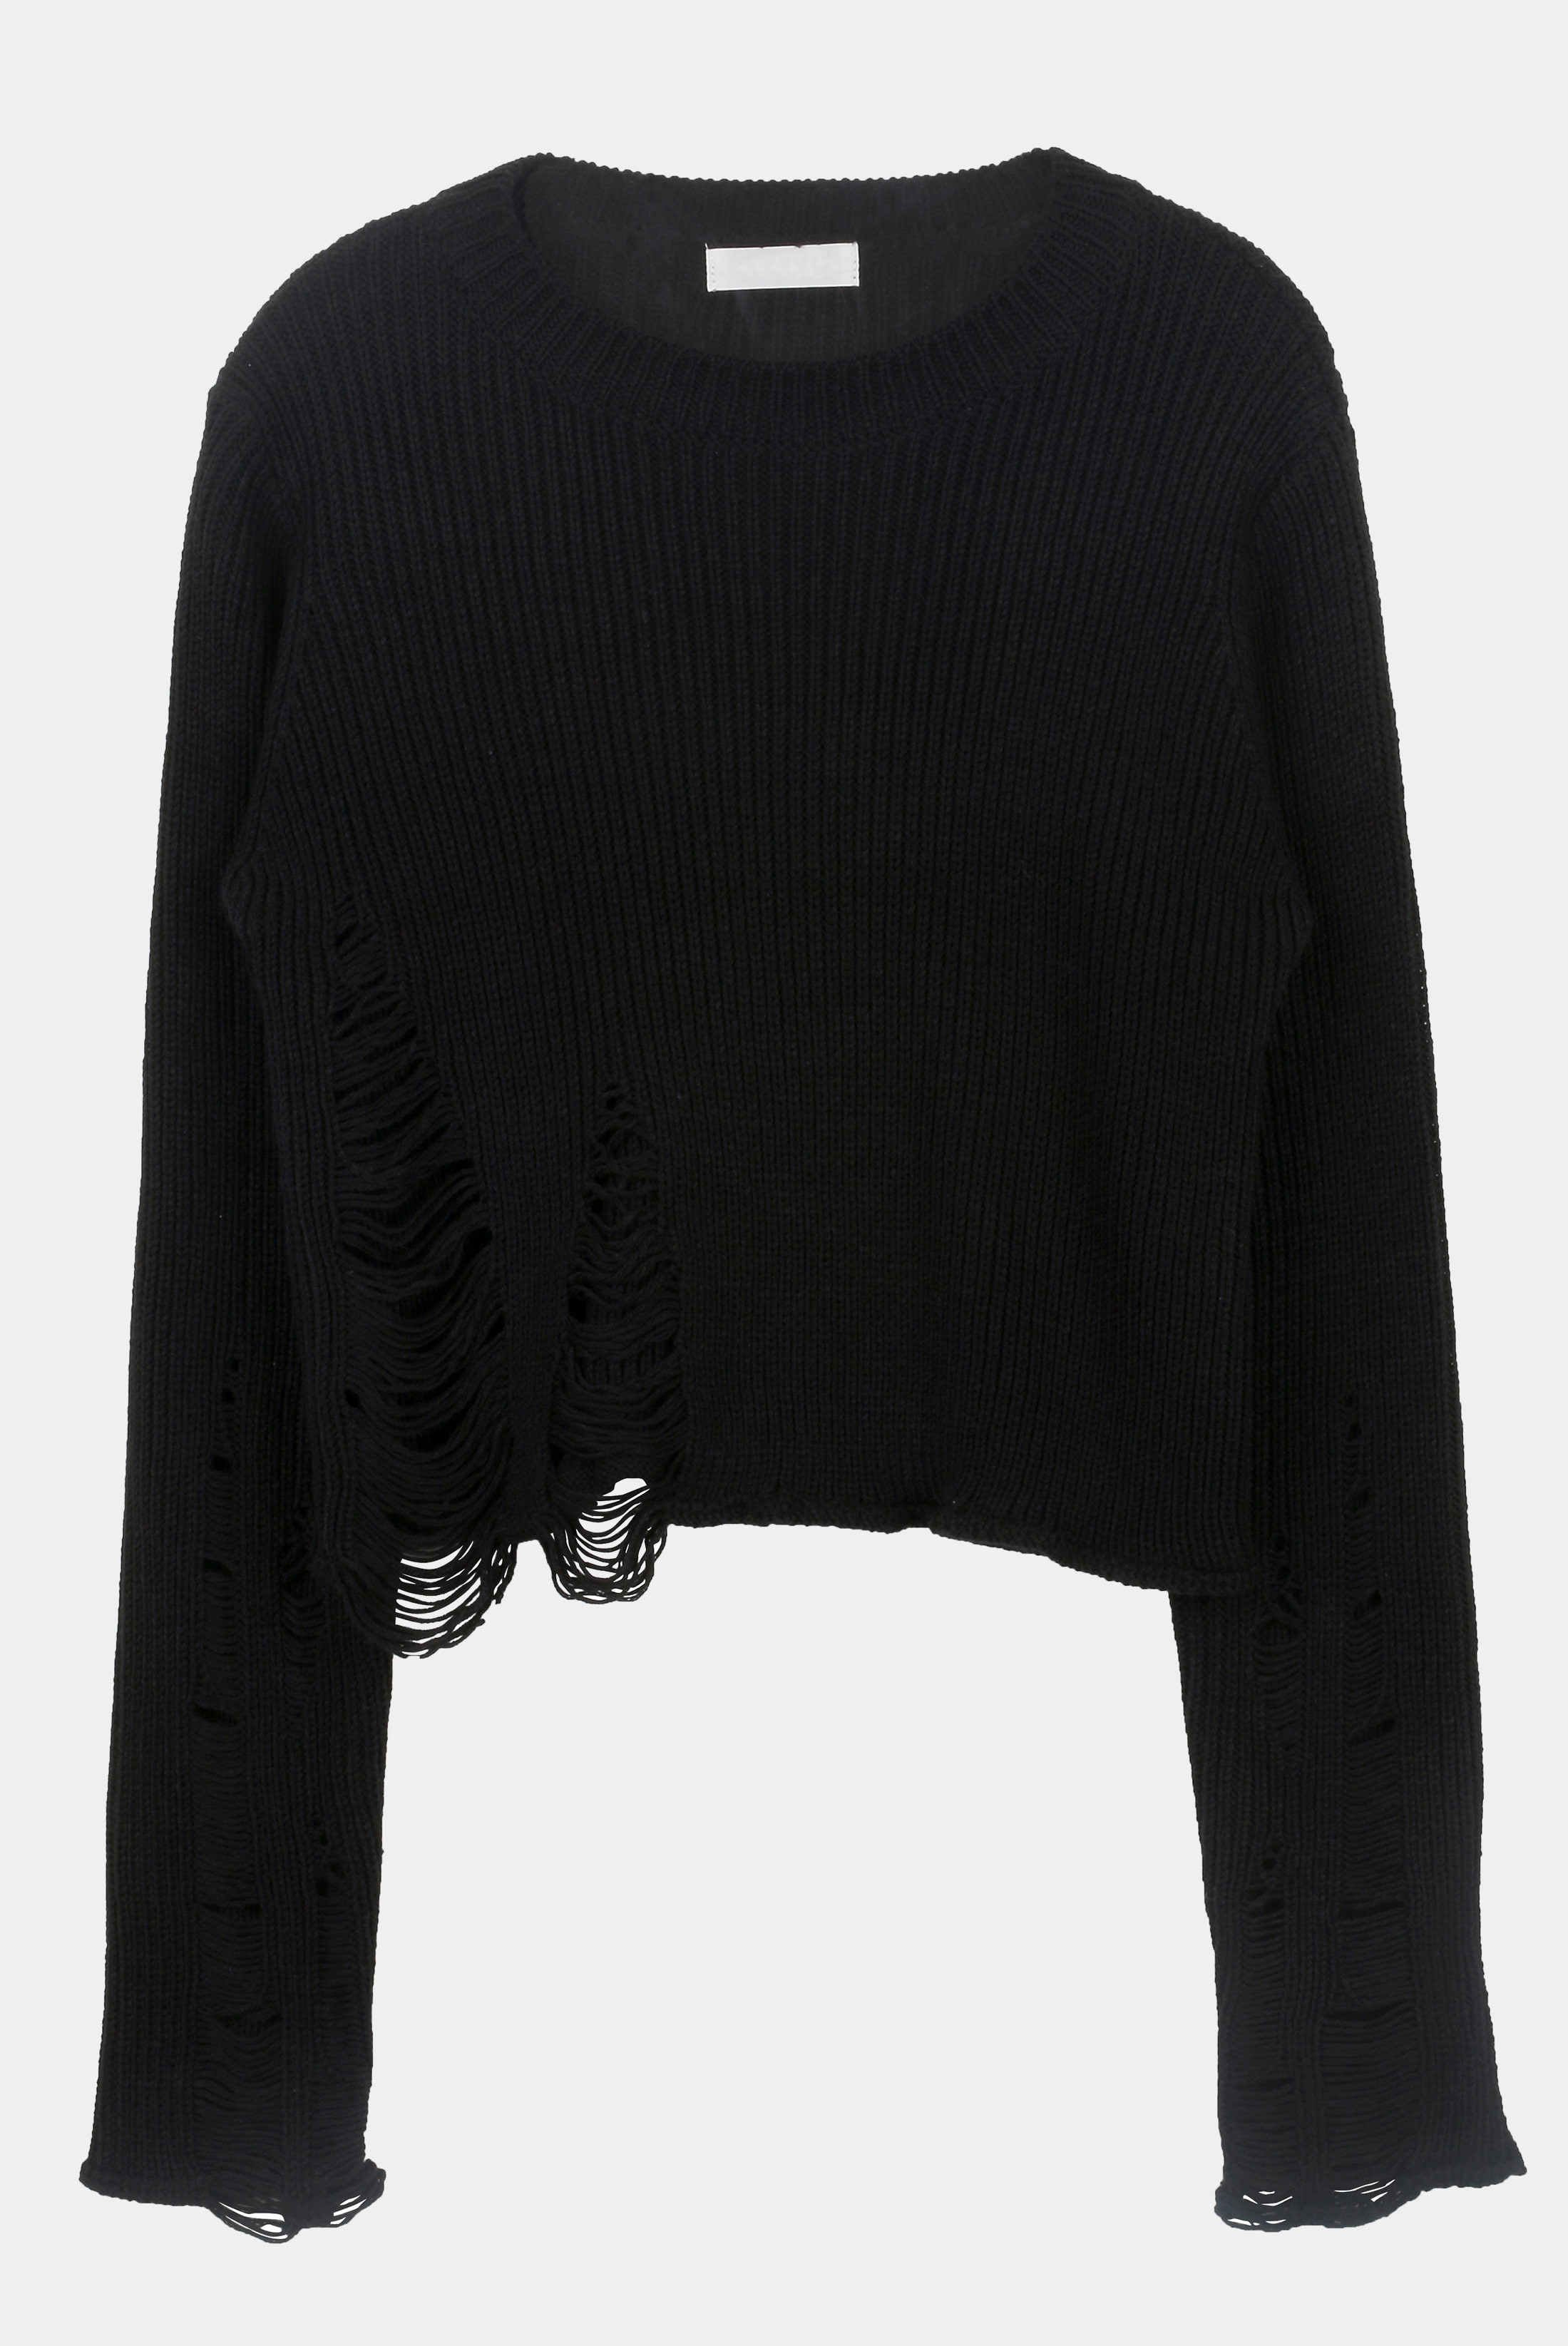 (W) Rough_Demage Crop_Knit